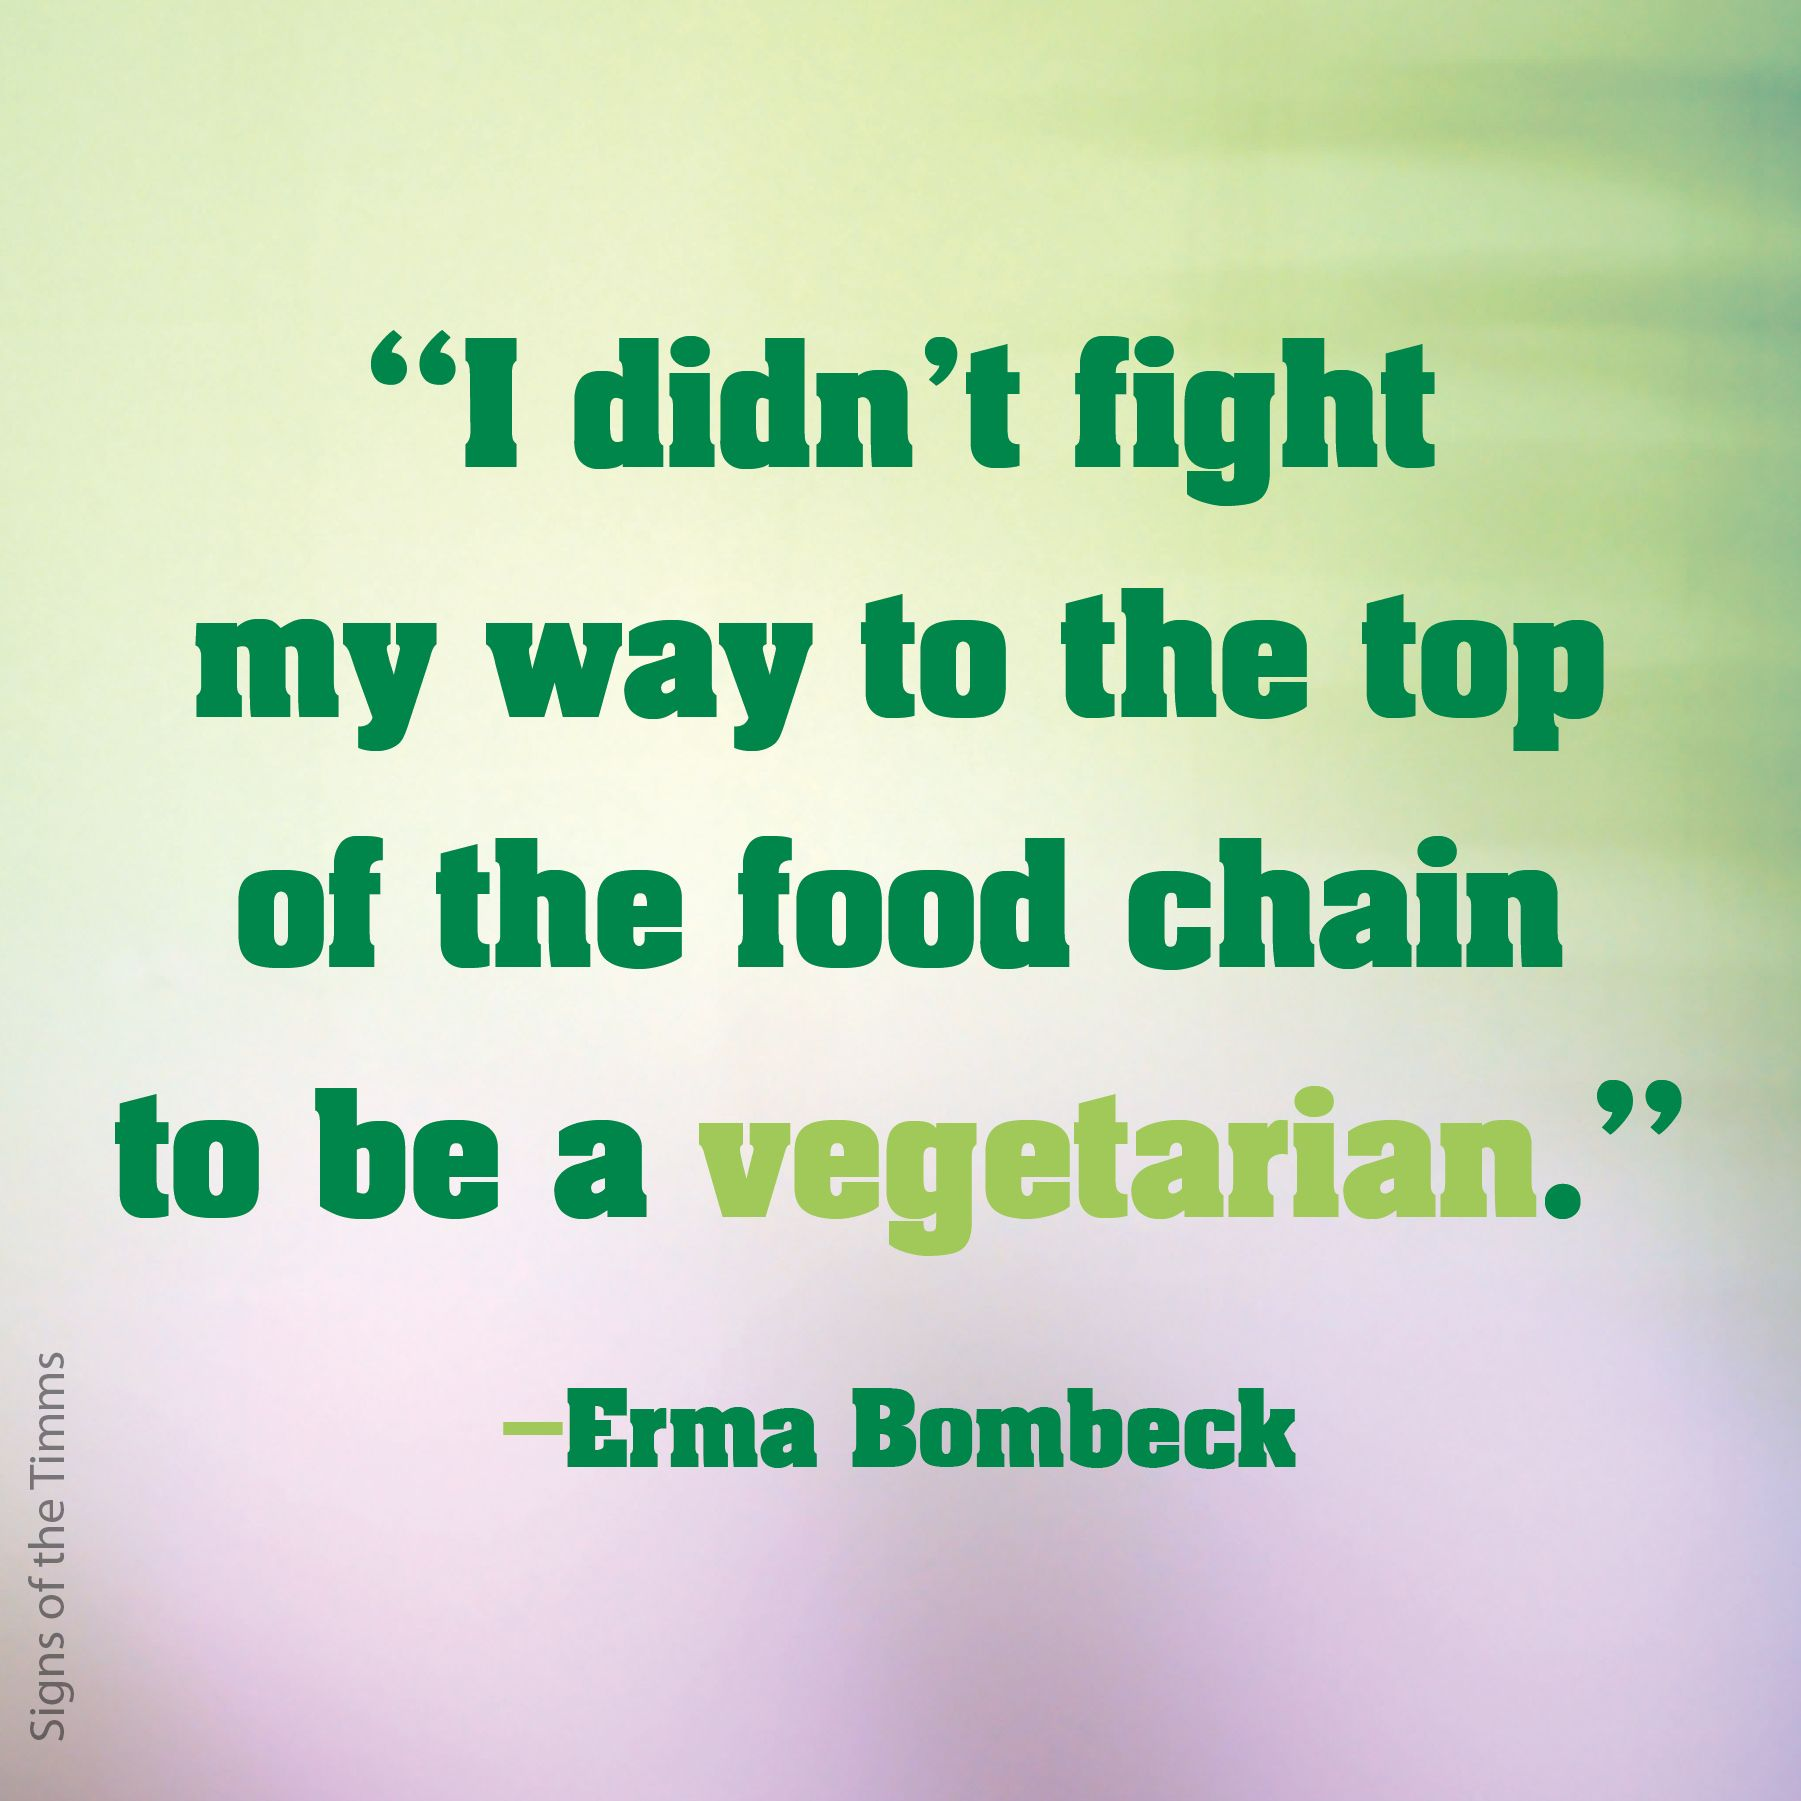 Pin By Married To Soccer On Erma Bombeck Funny Diet Quotes Food Quotes Funny Diet Quotes